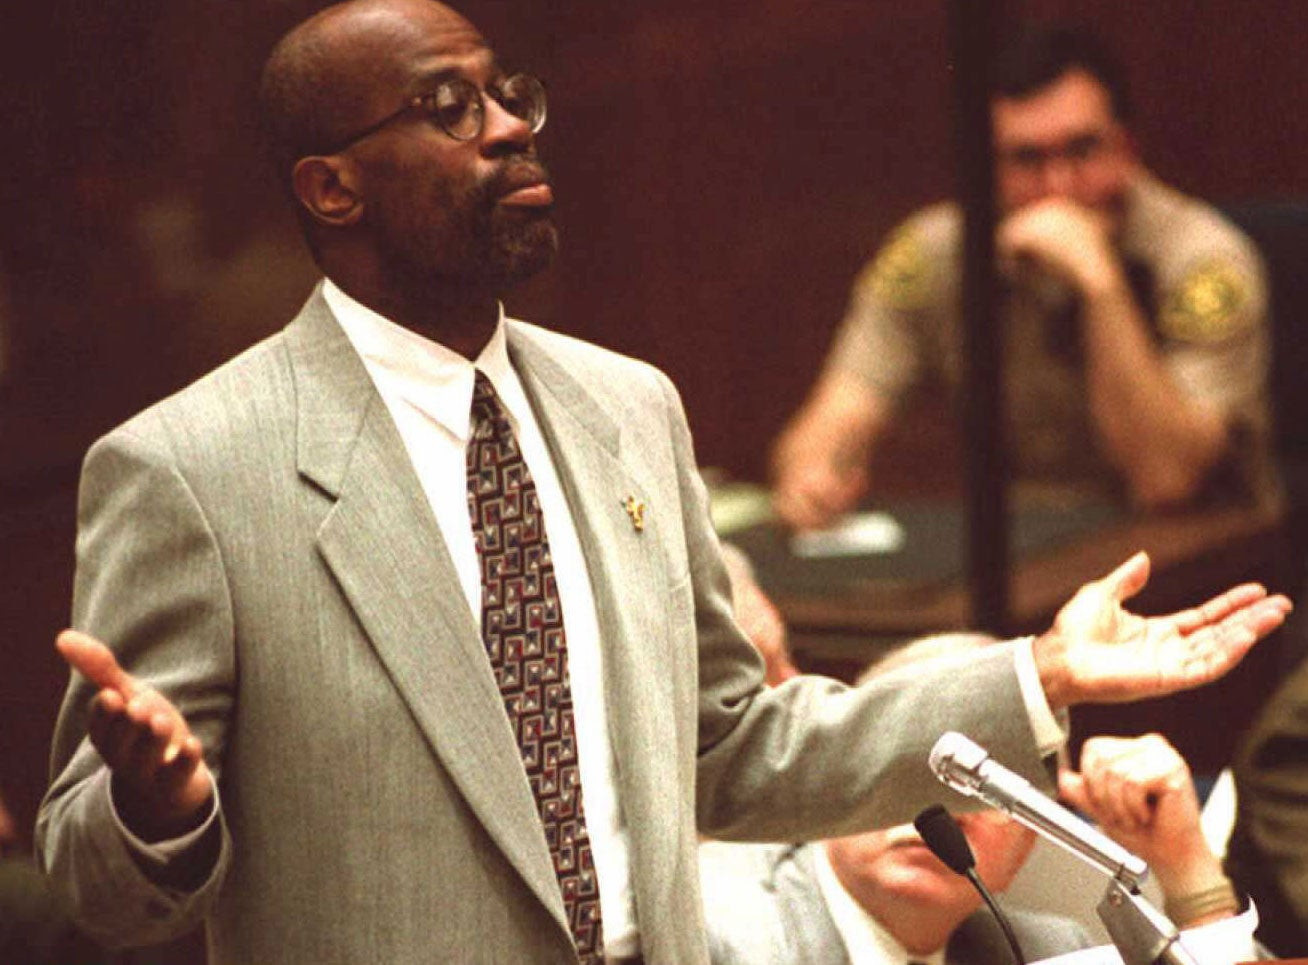 Chris Darden Regrets Prosecuting OJ Simpson, Says He Confessed to Murdering Nicole Simpson